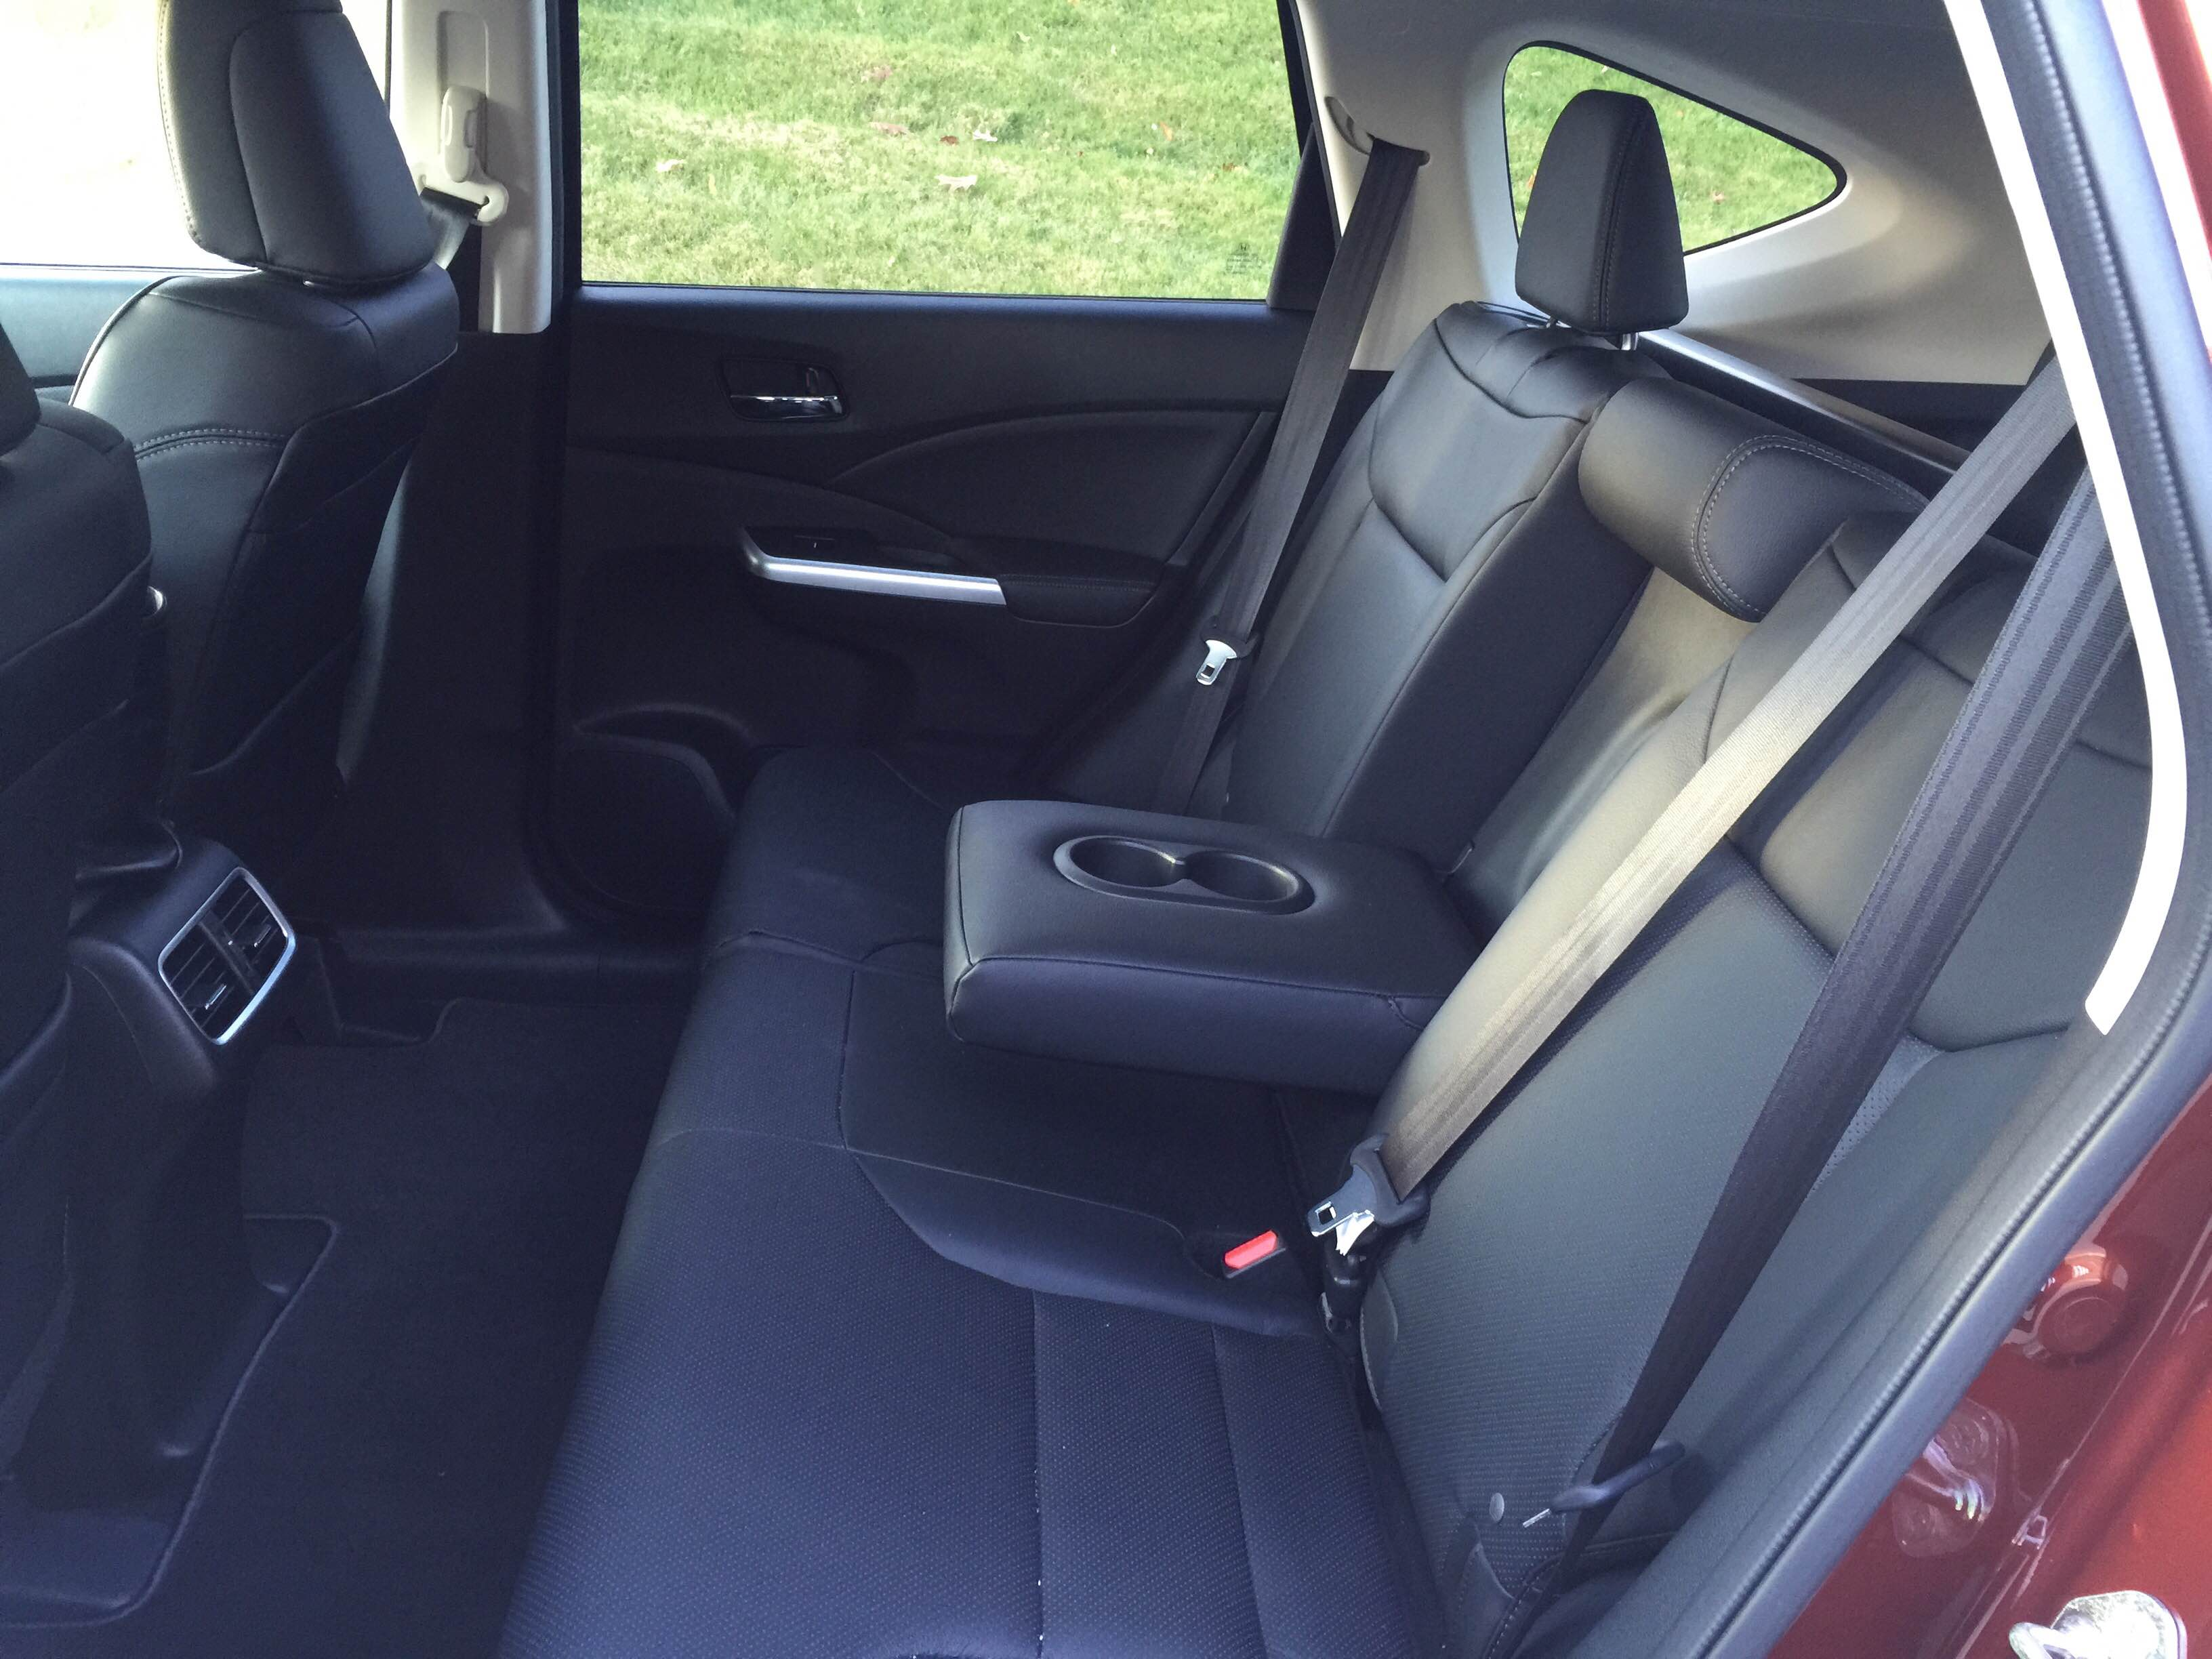 2015 Honda CR-V Rear Seats